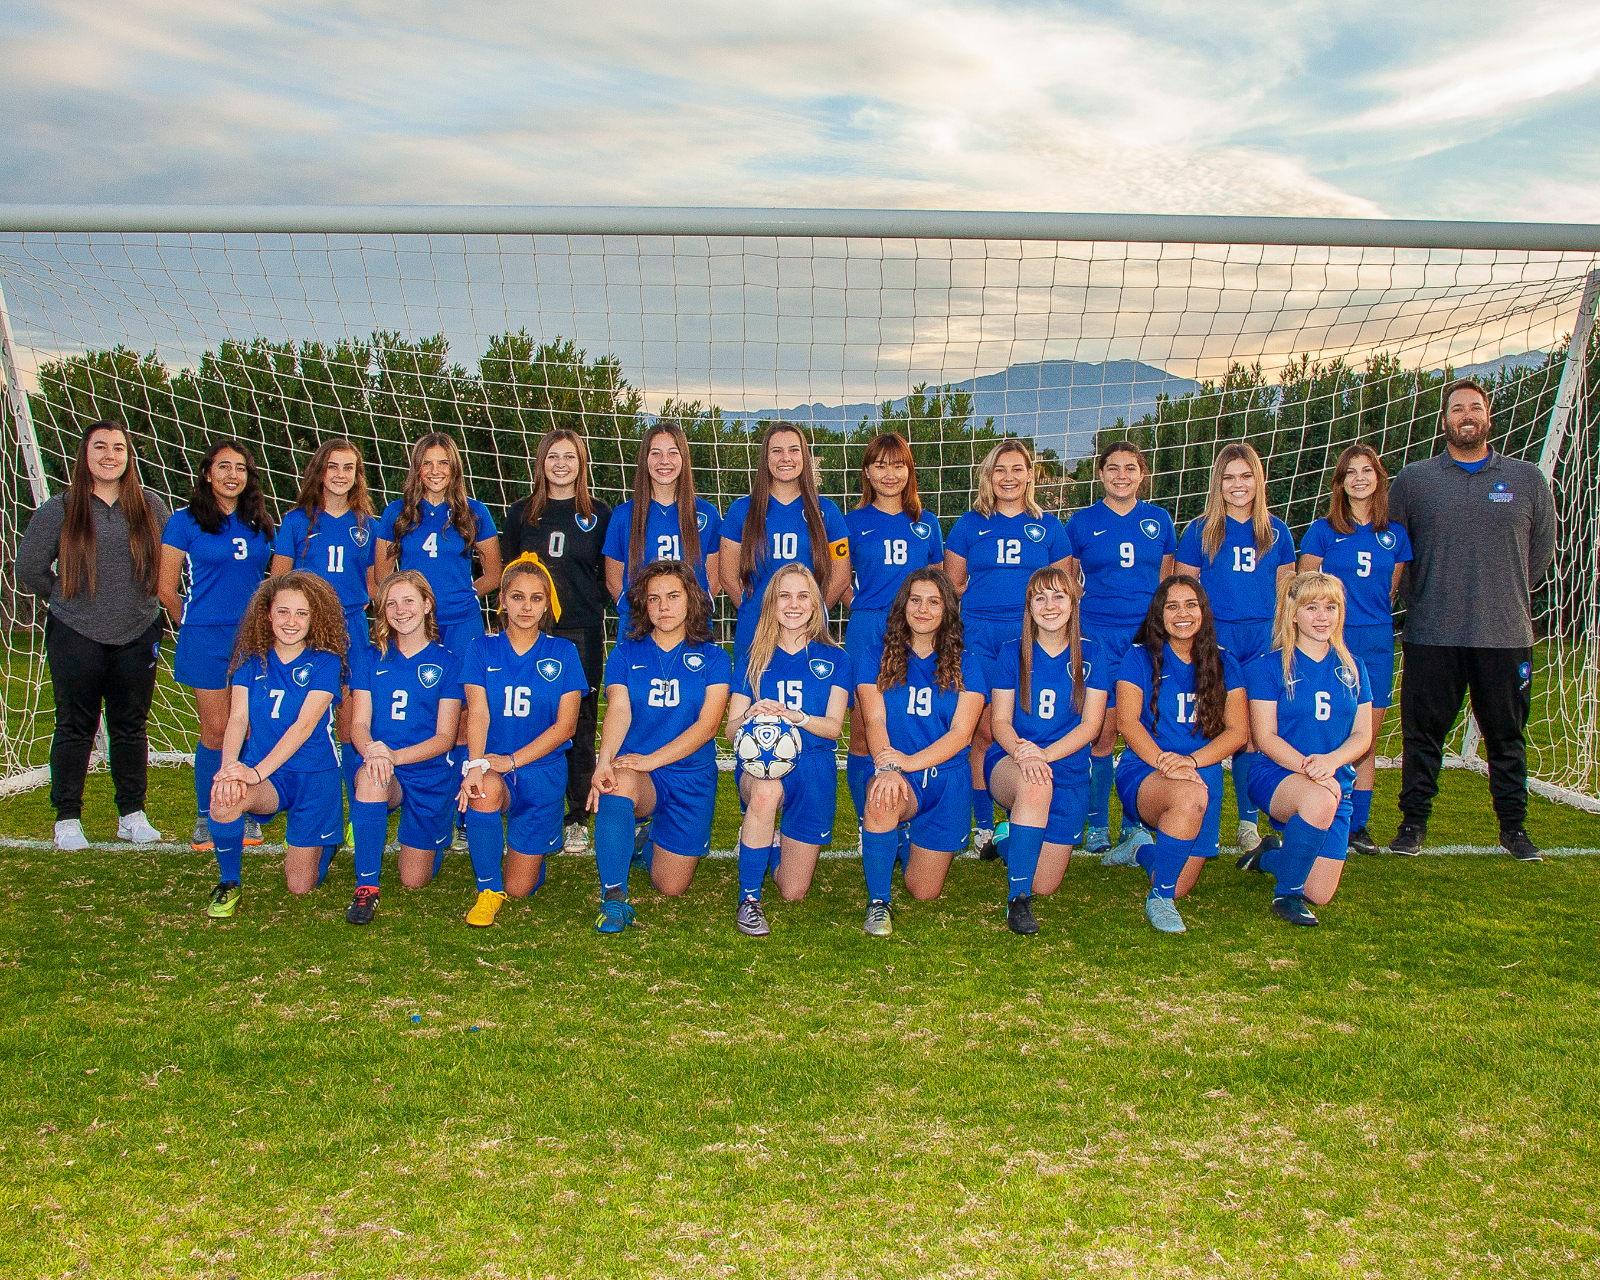 All League Awards – Girls Soccer